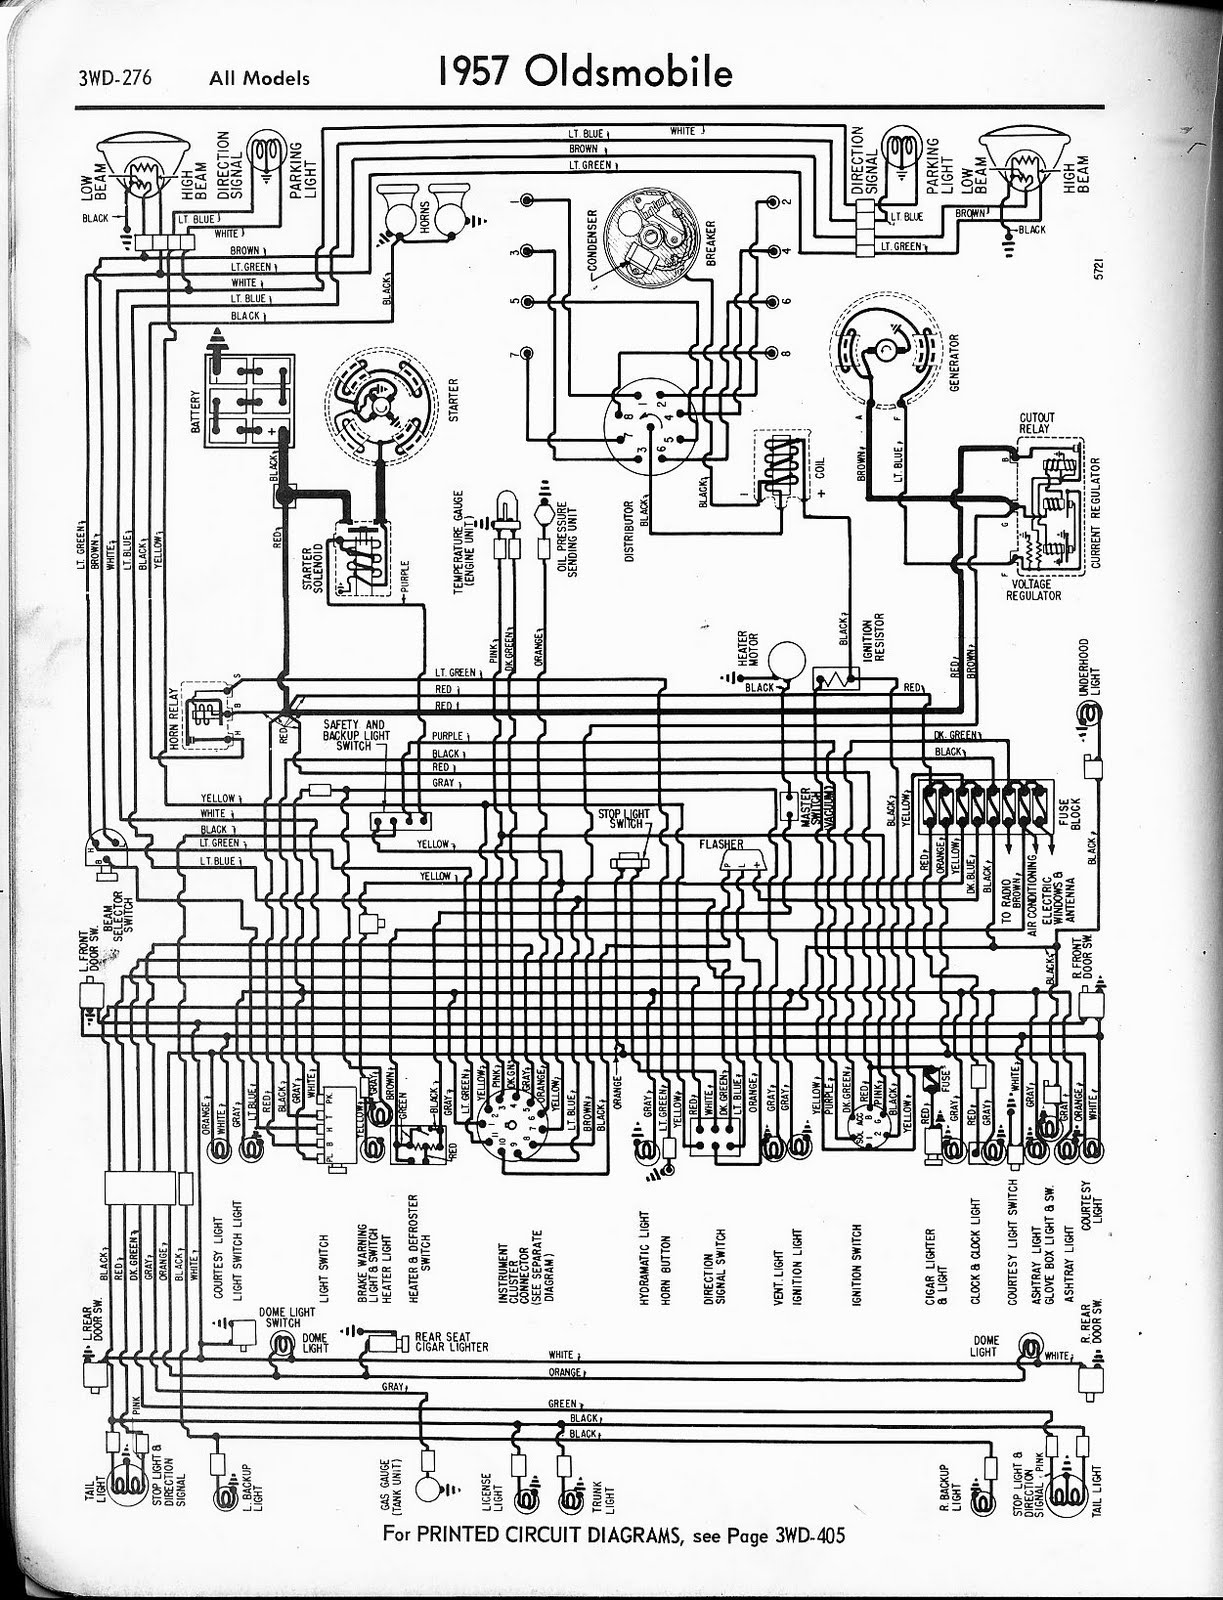 1985 oldsmobile cutlass fuse box wiring library1985 oldsmobile cutlass fuse box [ 1223 x 1600 Pixel ]